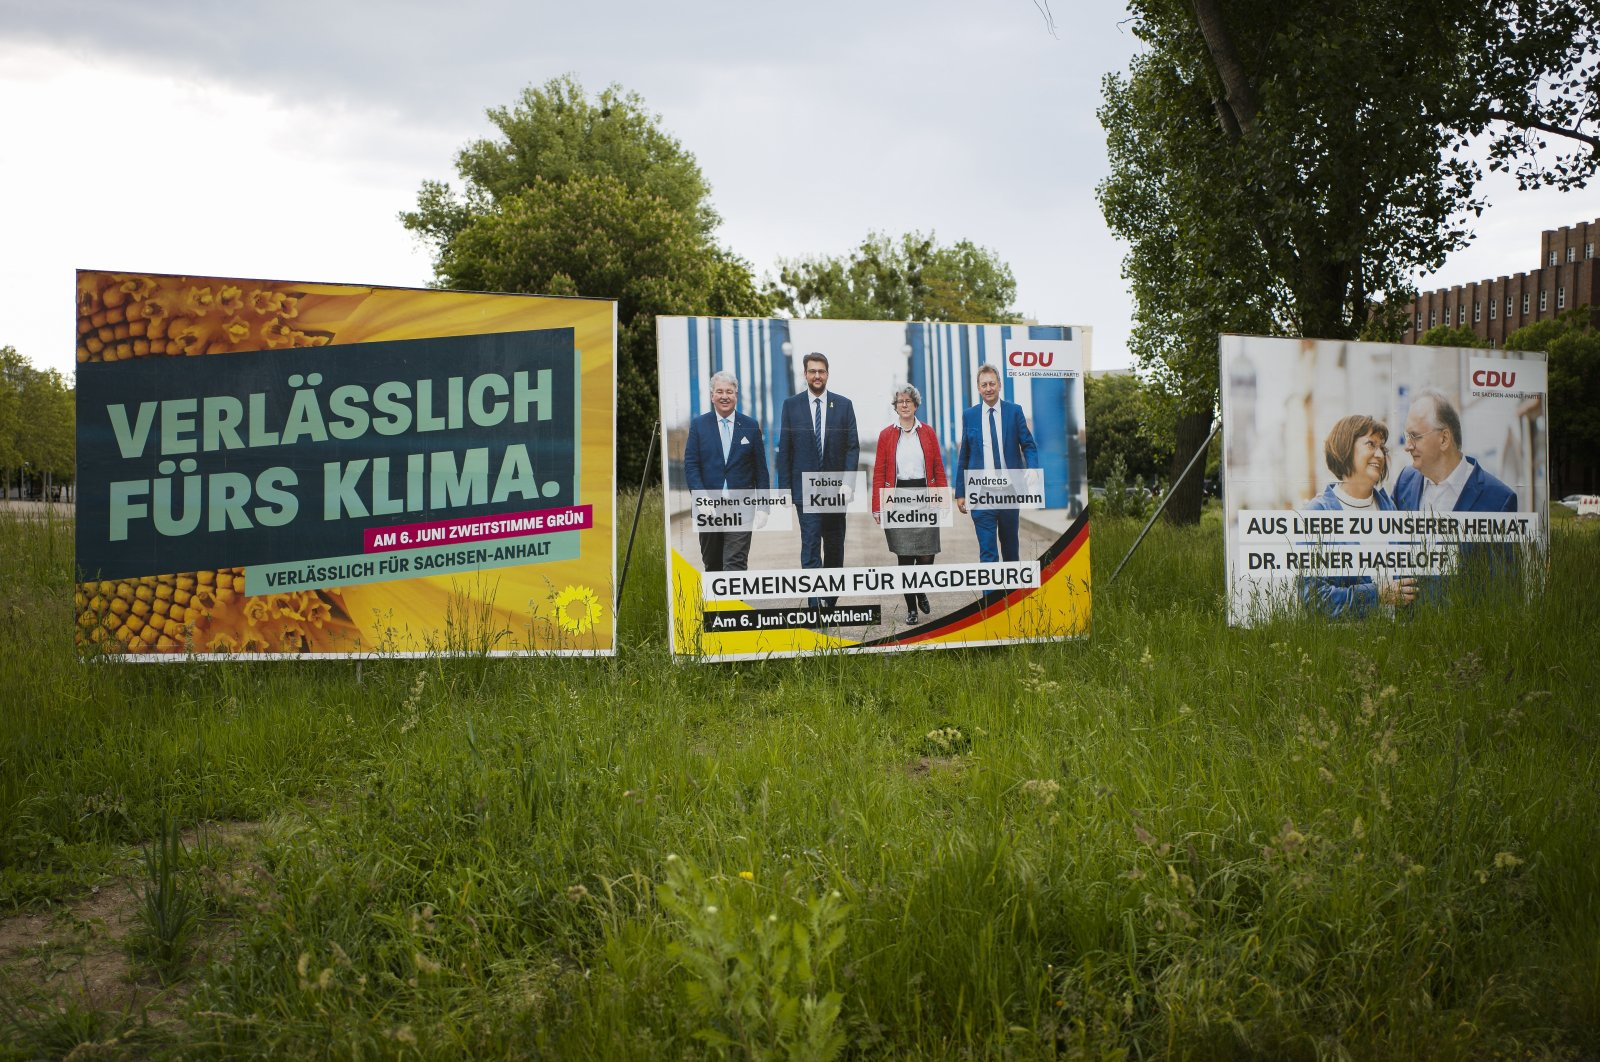 Election campaign posters from the Greens and Merkel's Christian Democratic Union party stand near a road in the federal state Saxony-Anhalt's capital Magdeburg, Germany, Wednesday, June 2, 2021. (AP Photo)